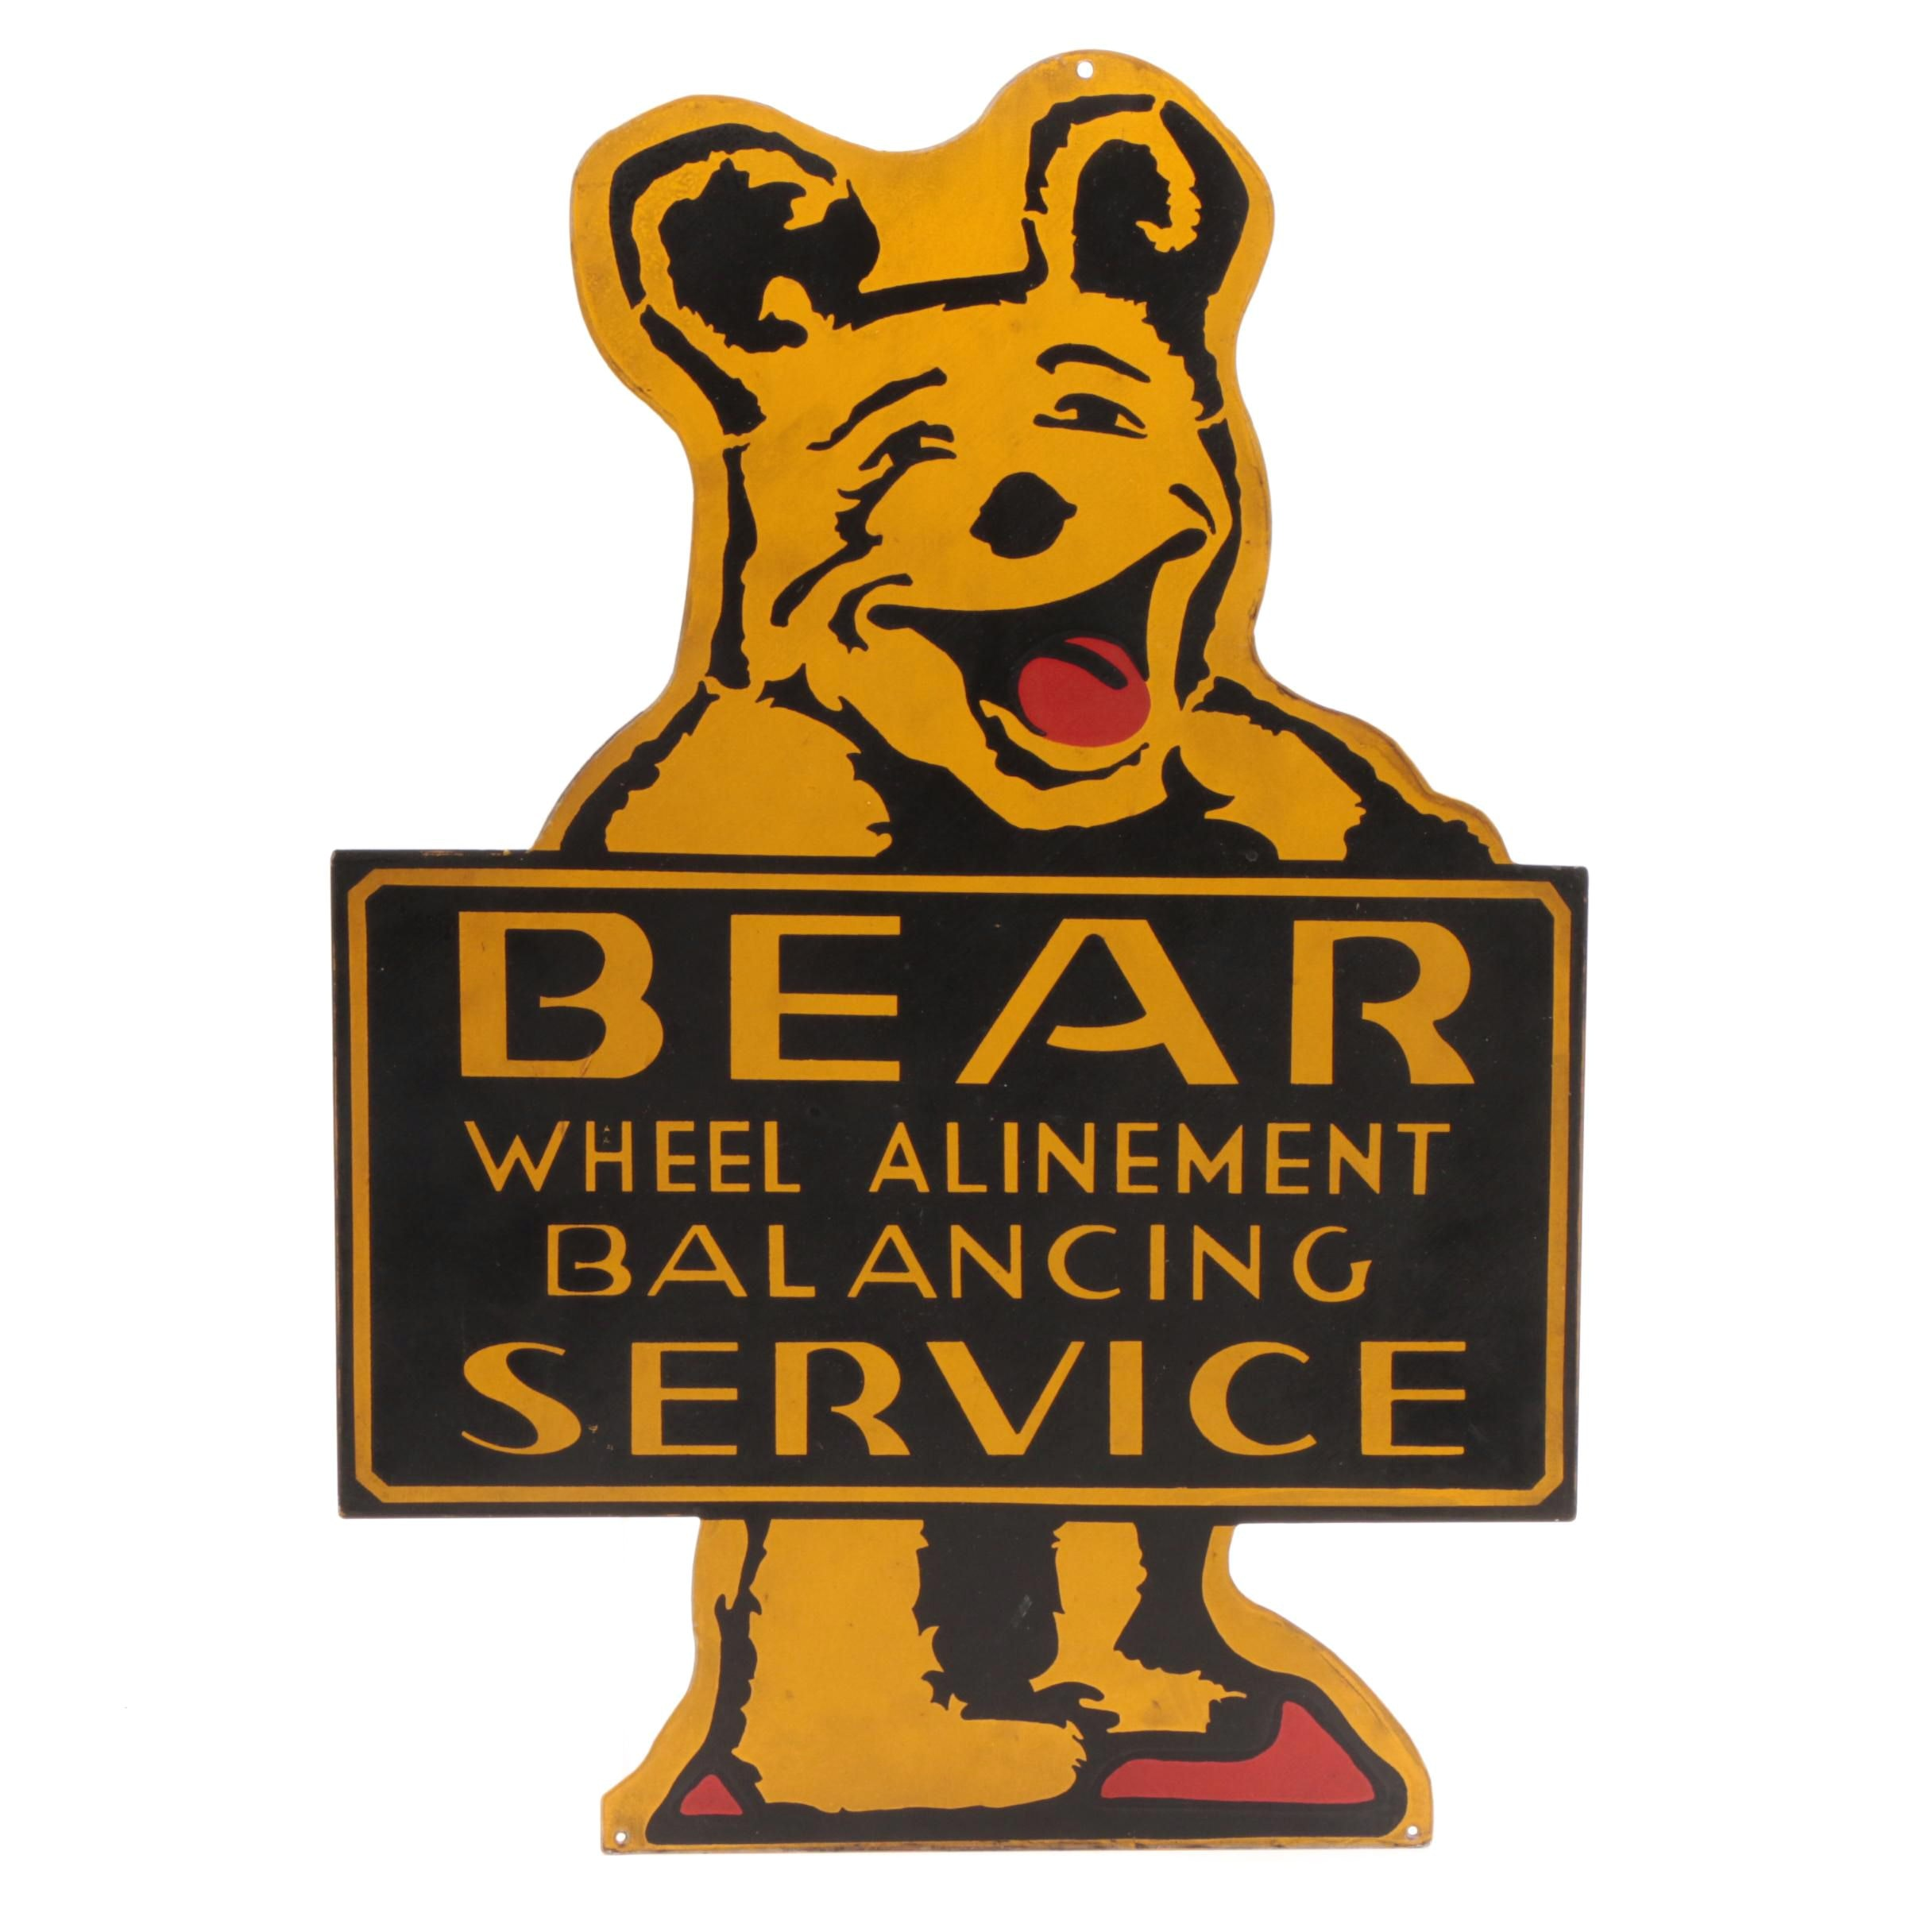 1950s-1960s Porcelain Bear Wheel Alignment Sign